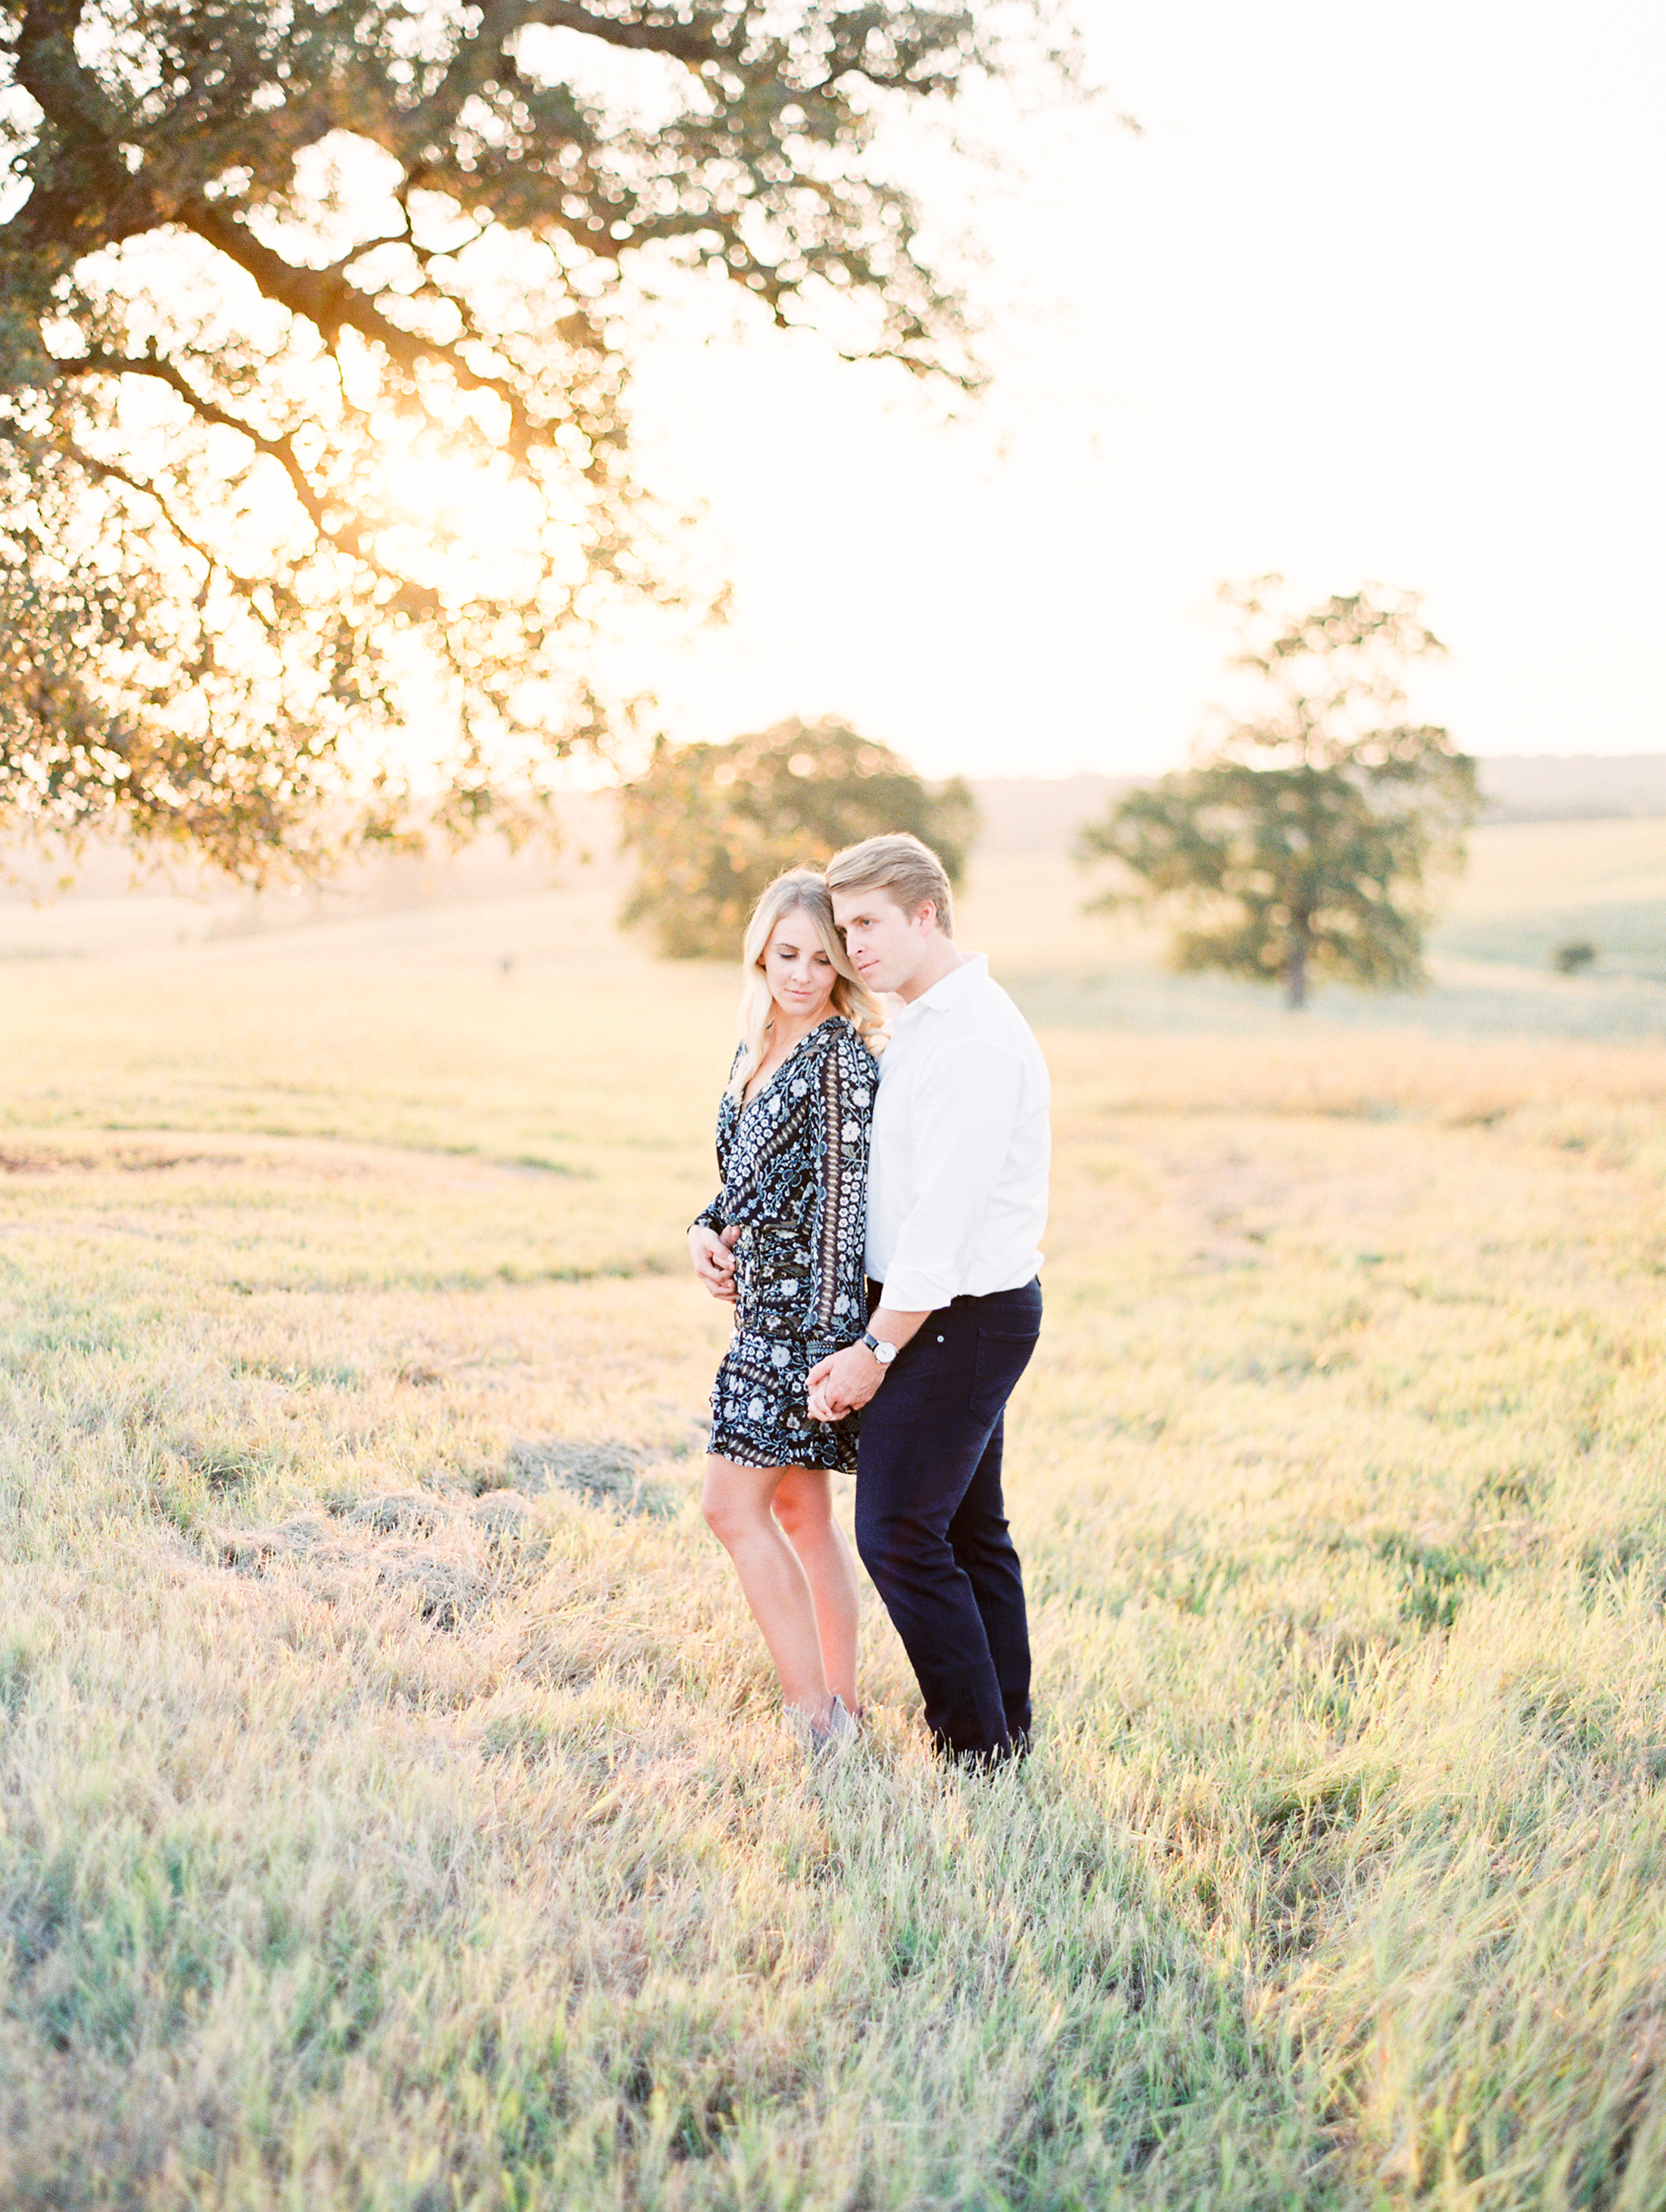 Lauren+John+Engaged+TX-27.jpg